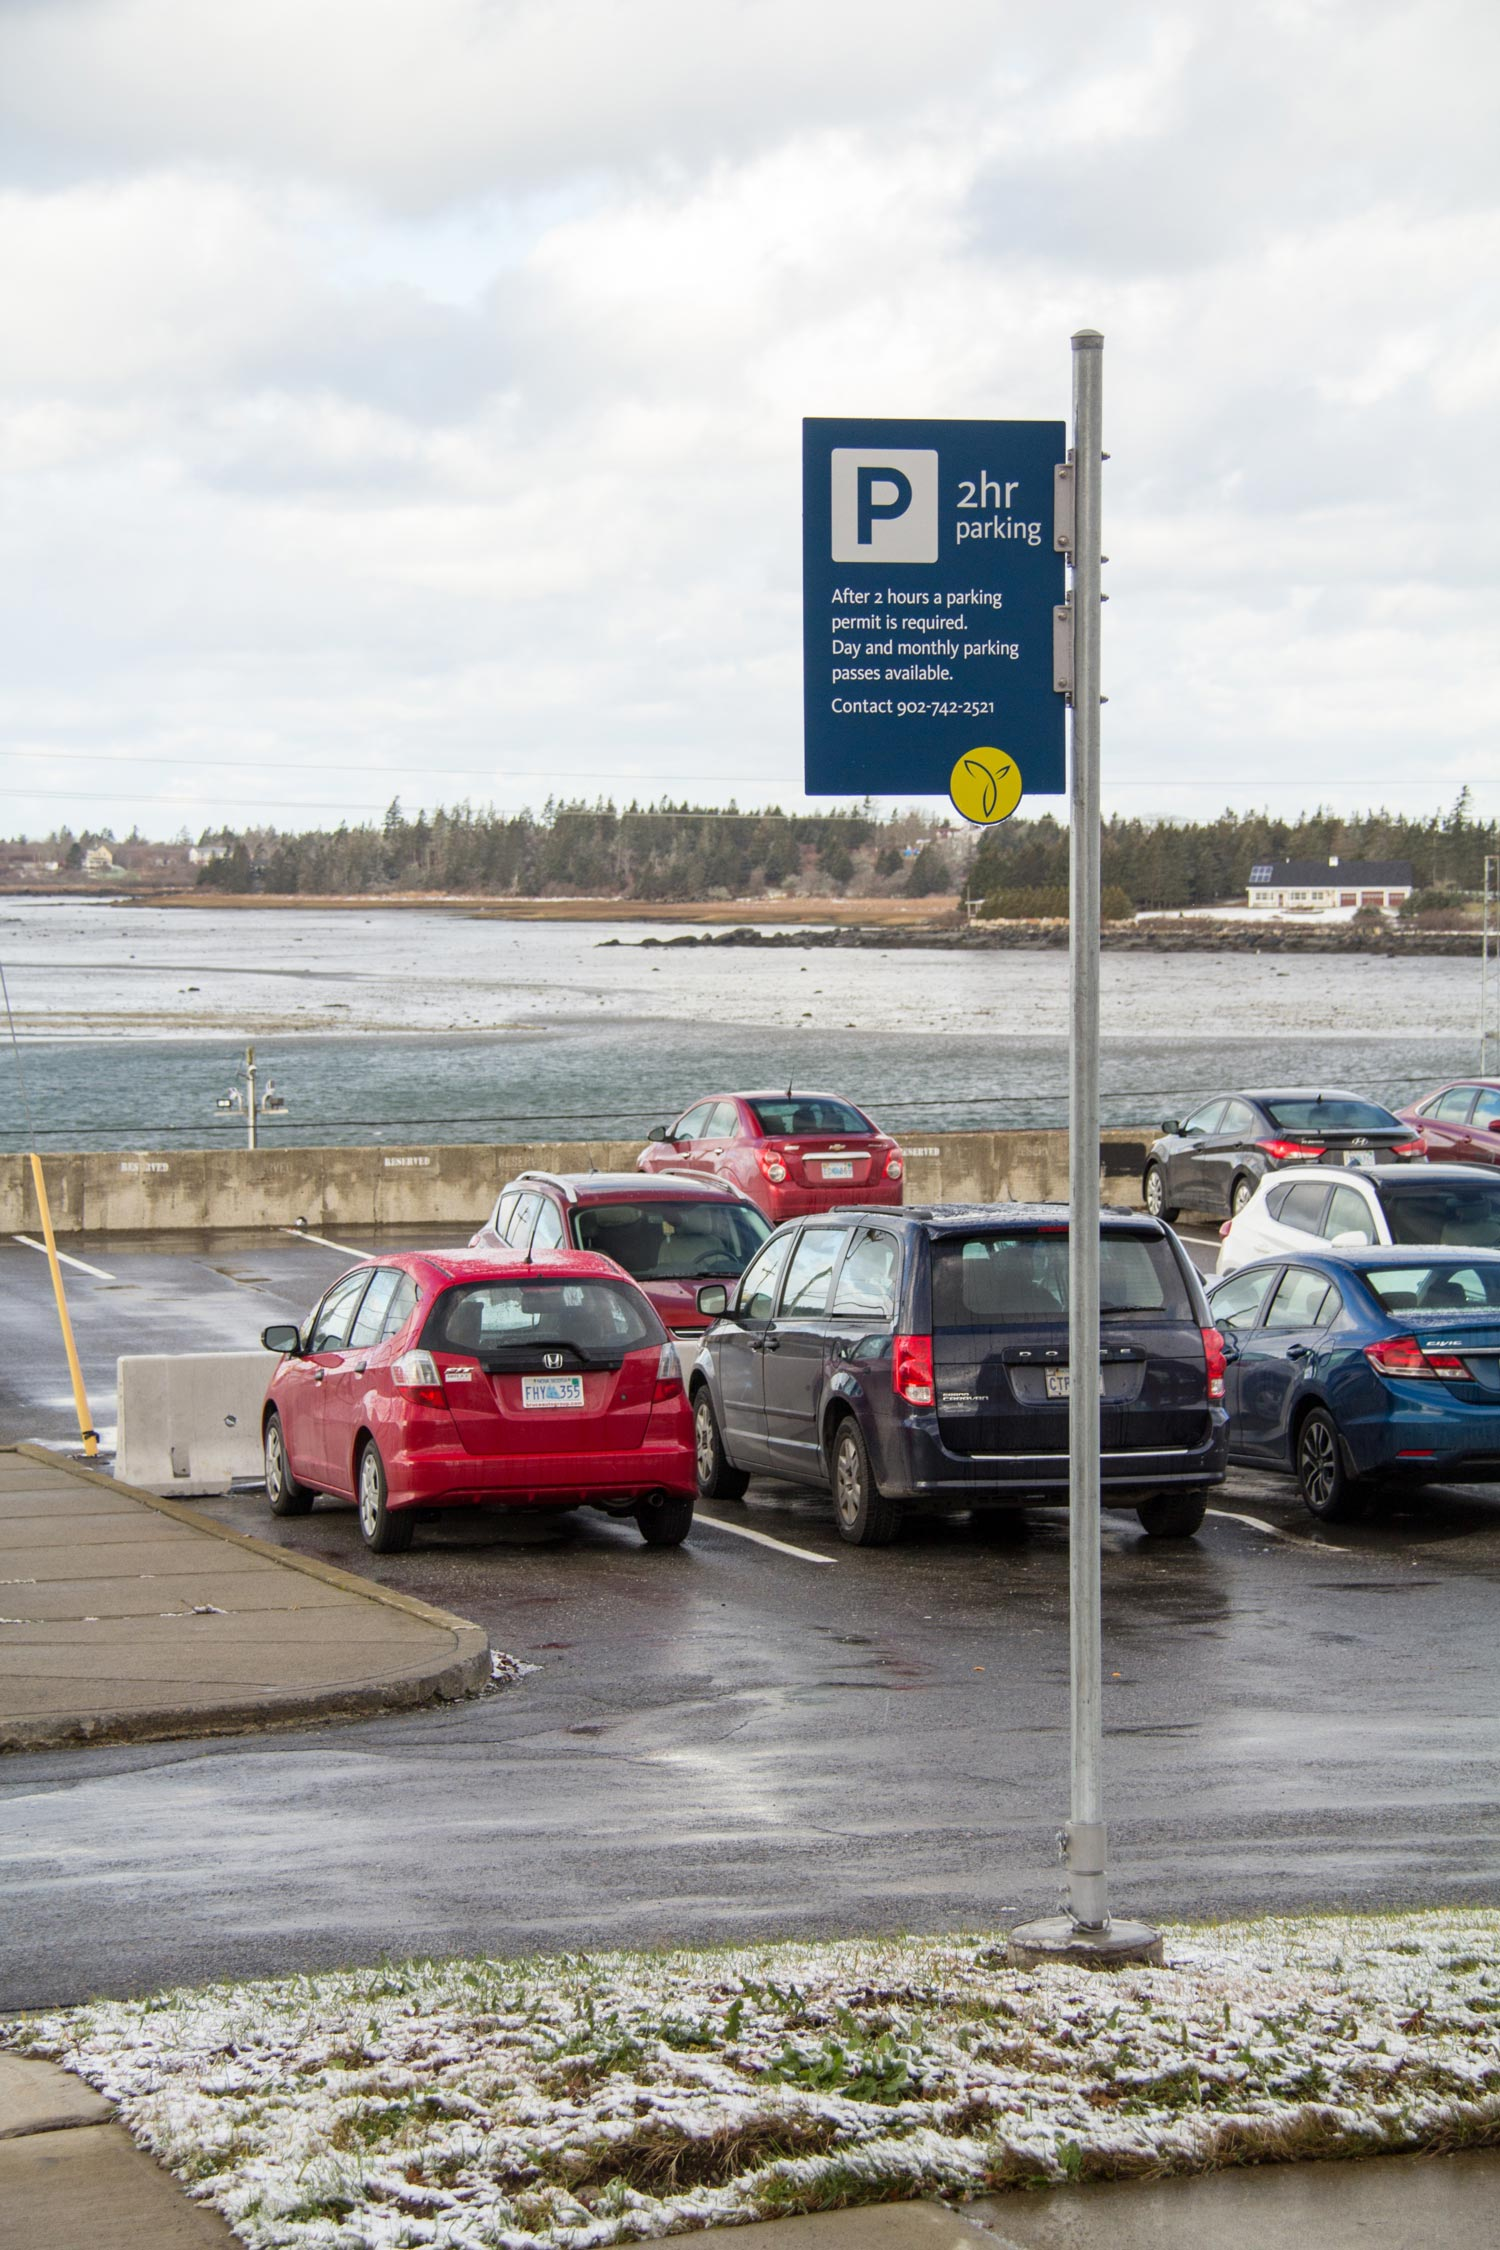 FROM CAR TO FOOT The vehicular system is aimed at getting visitors to an appropriate parking lot where they will also find information kiosks placed close by.